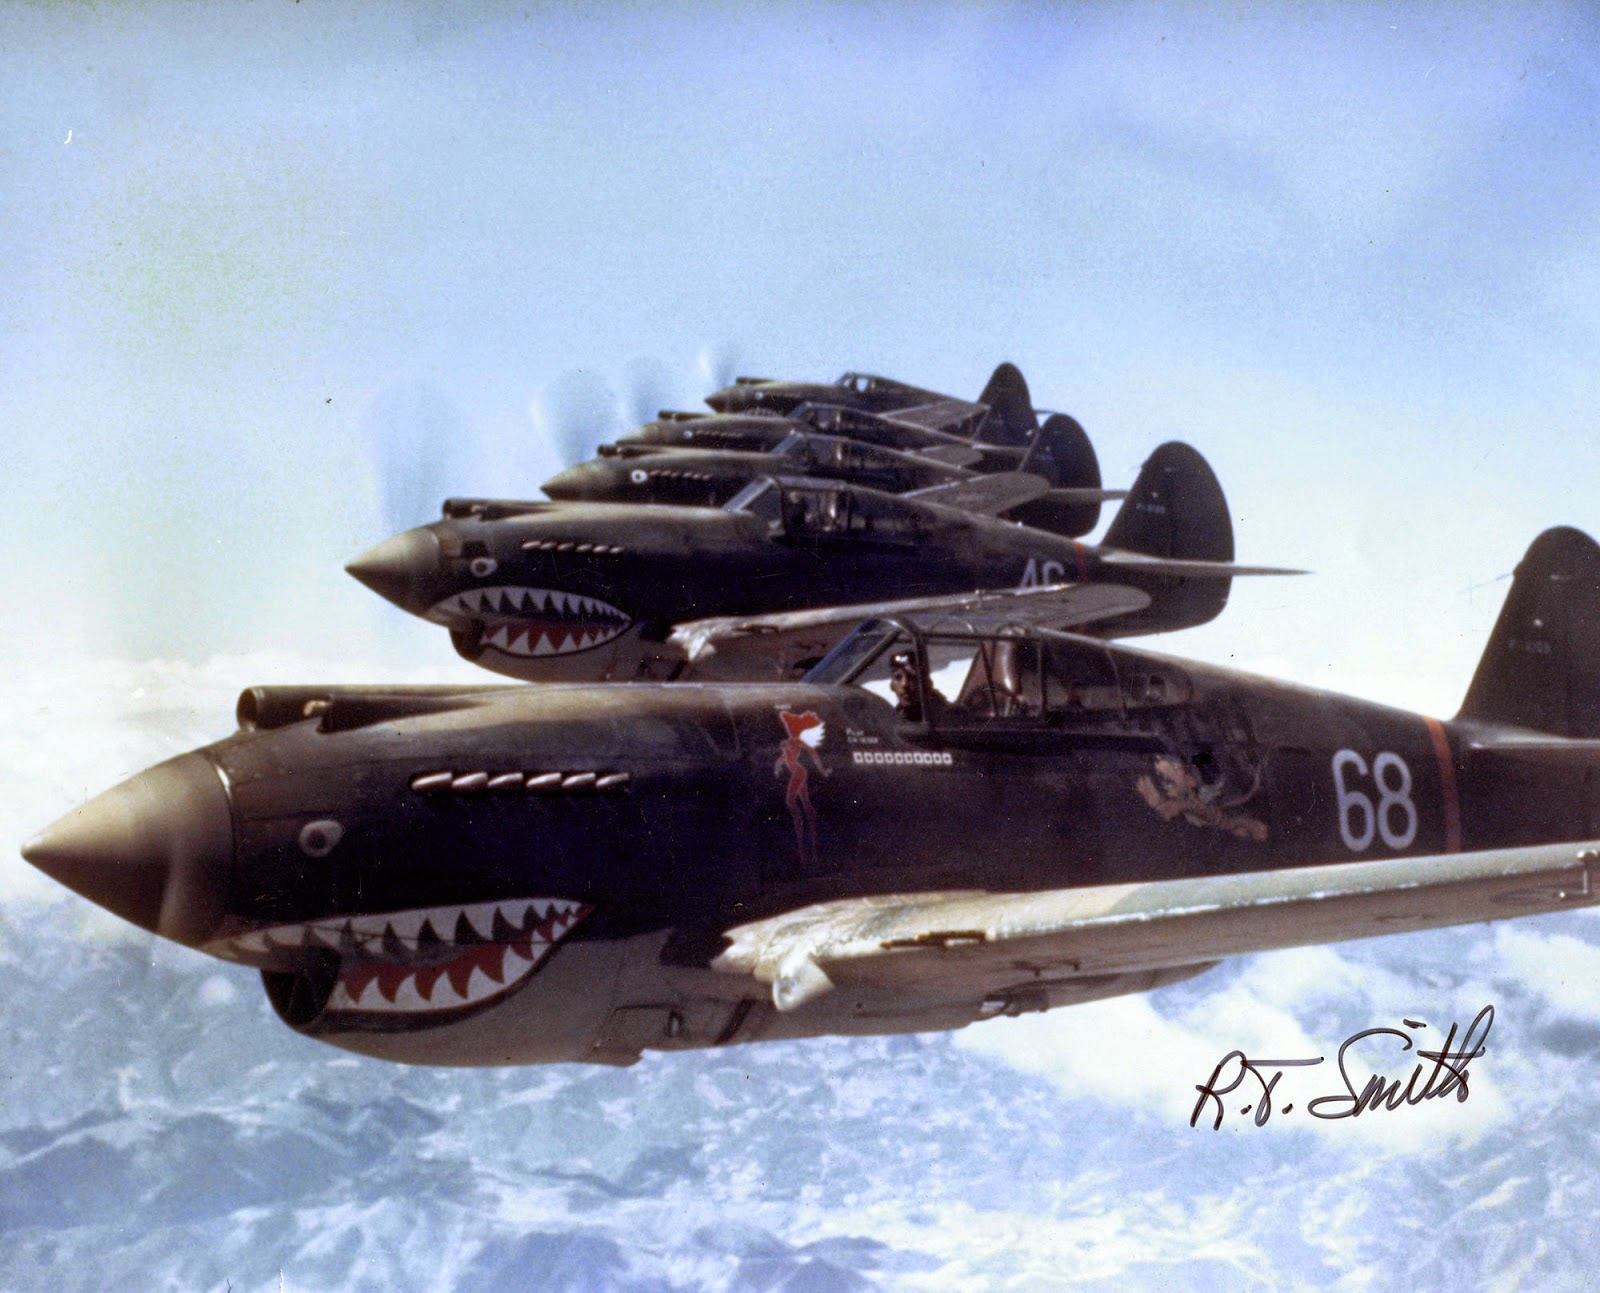 3rd Squadron Hell's Angels, Flying Tigers over China, photographed in 1942 by AVG pilot Robert T. Smith.